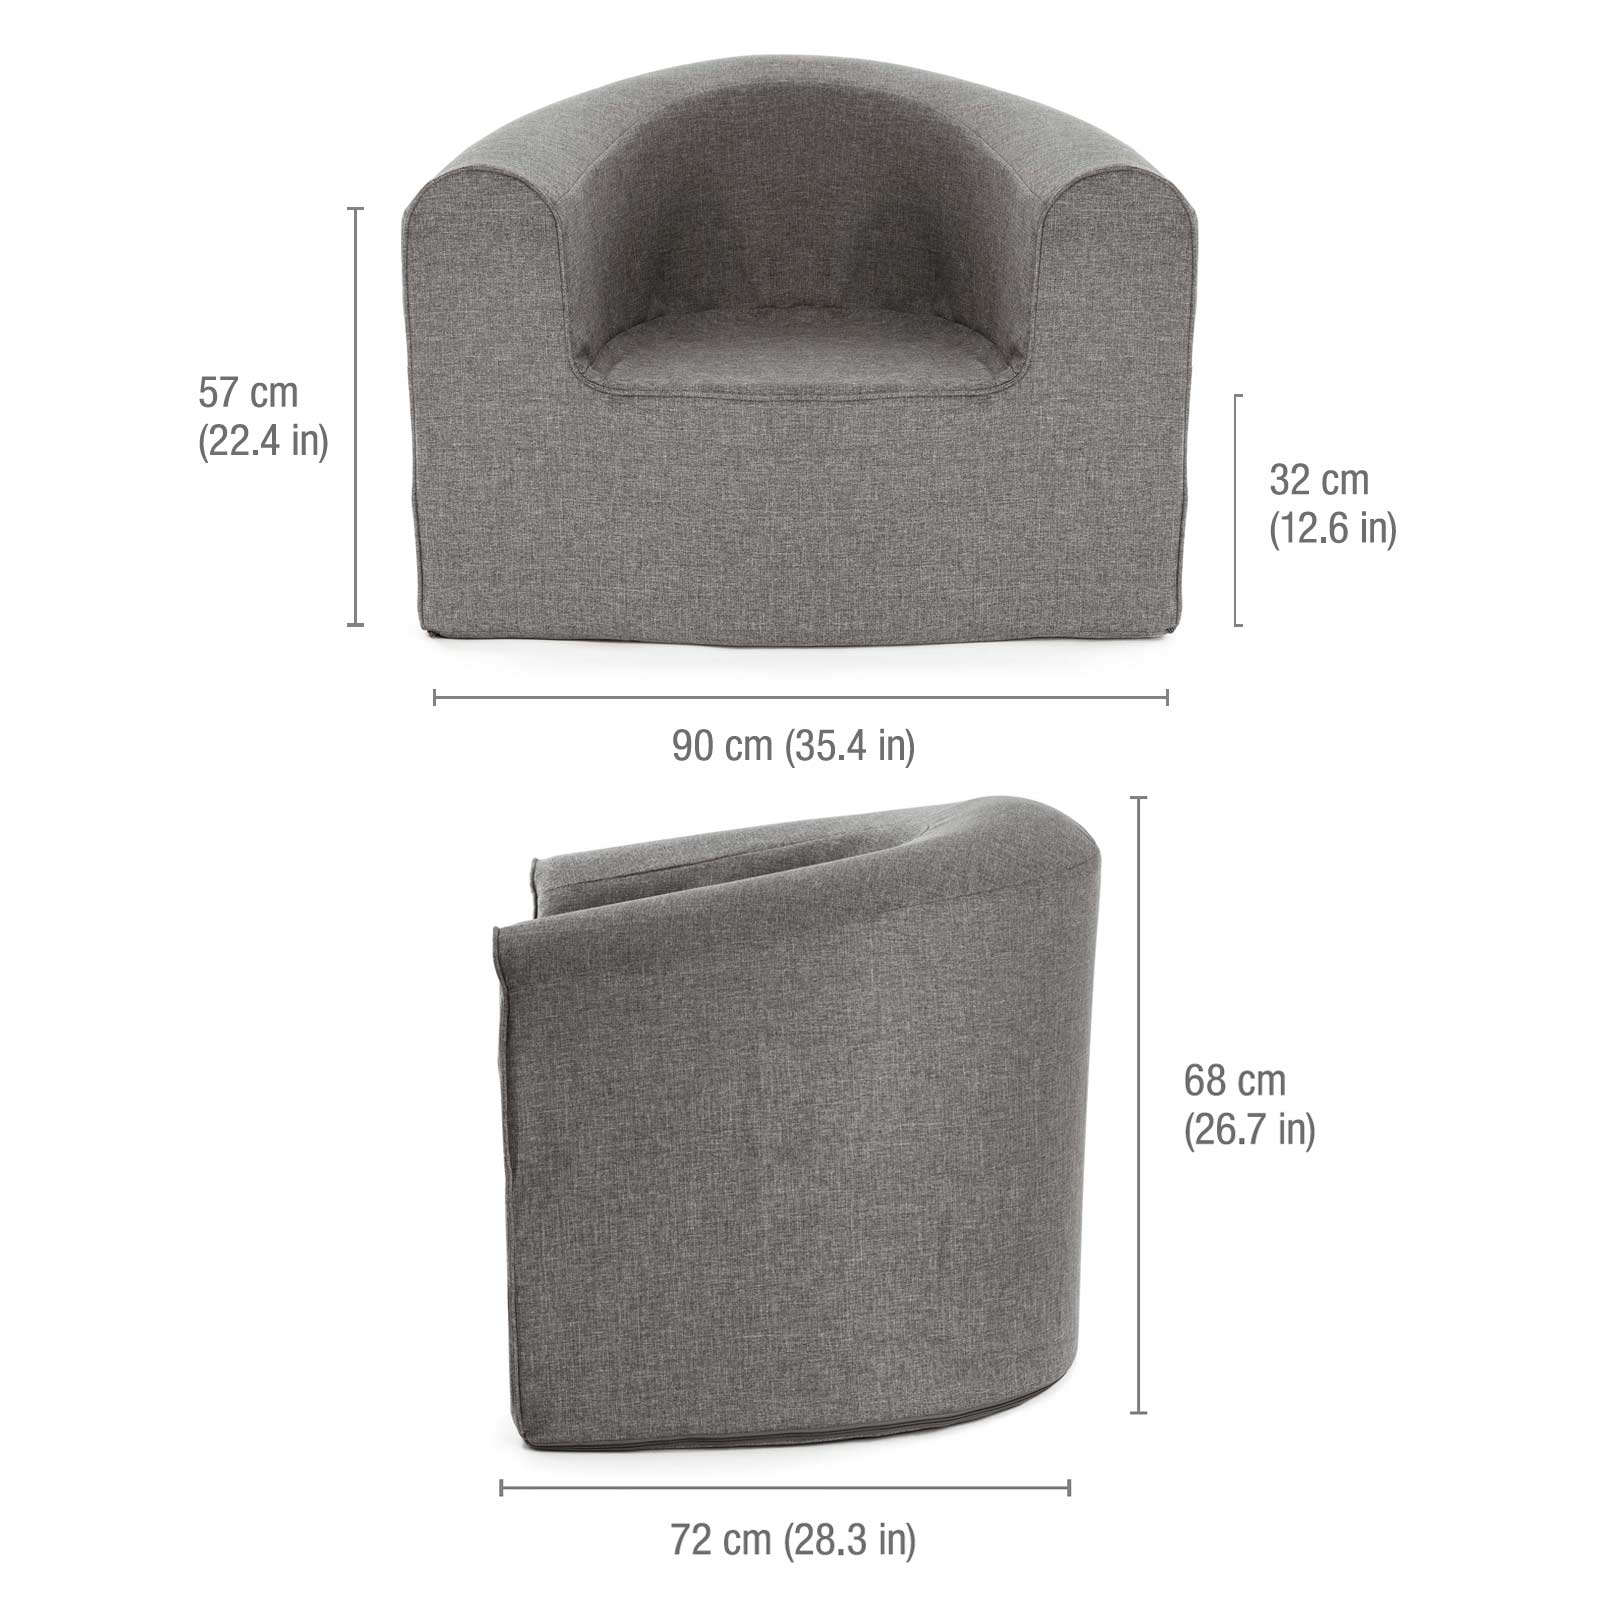 Image shows the dimensions of the pop lounge grey linen look foam armchair